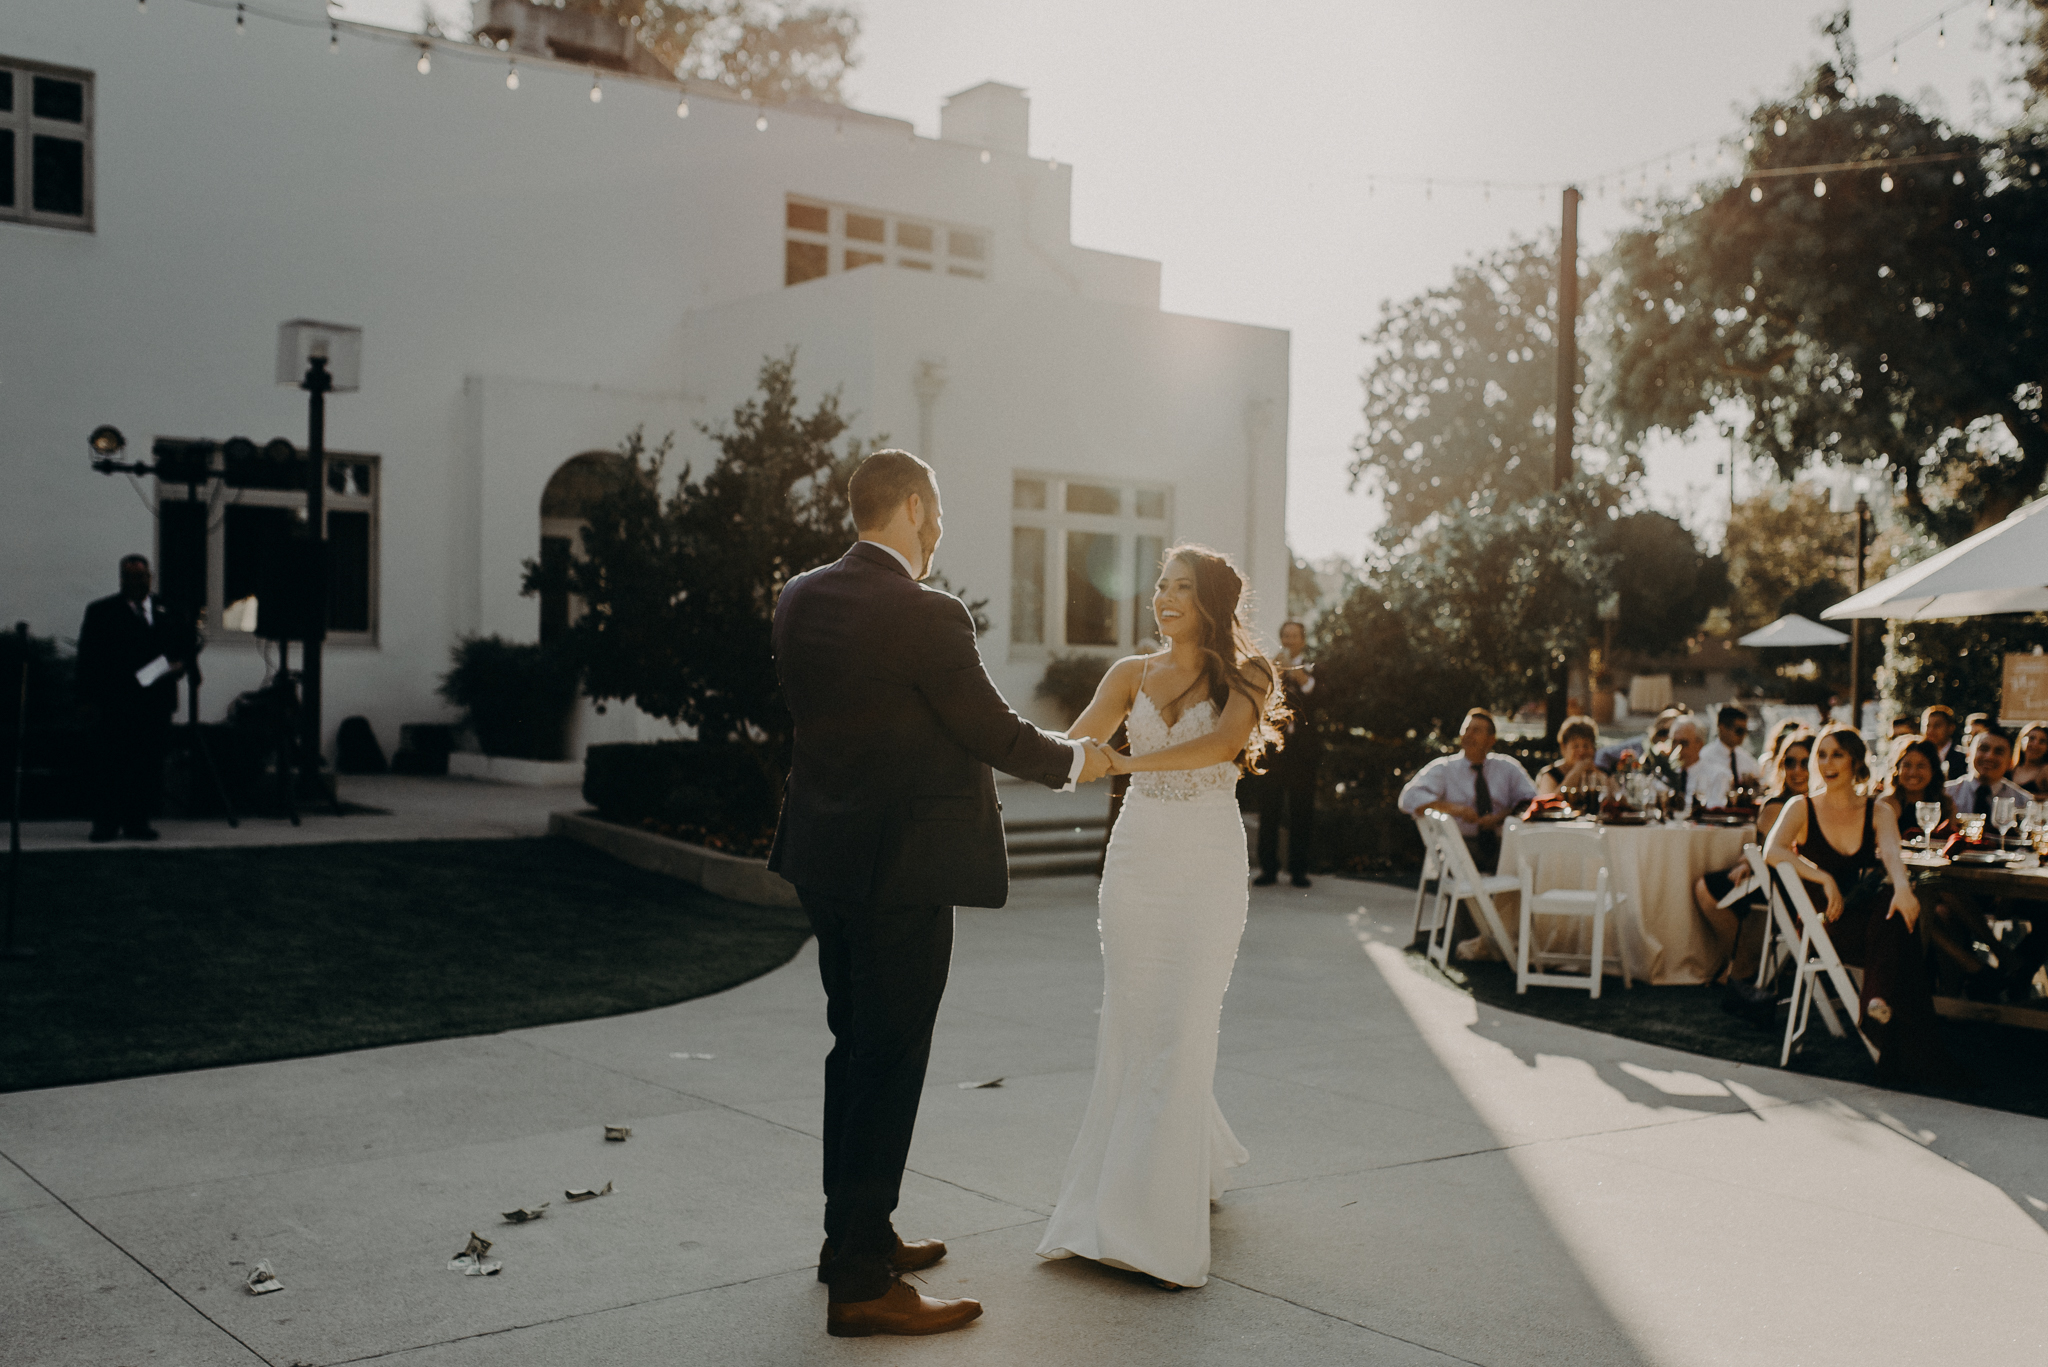 Wedding Photographer in Los Angeles - The Clarke Estate Wedding - IsaiahAndTaylor.com-078.jpg